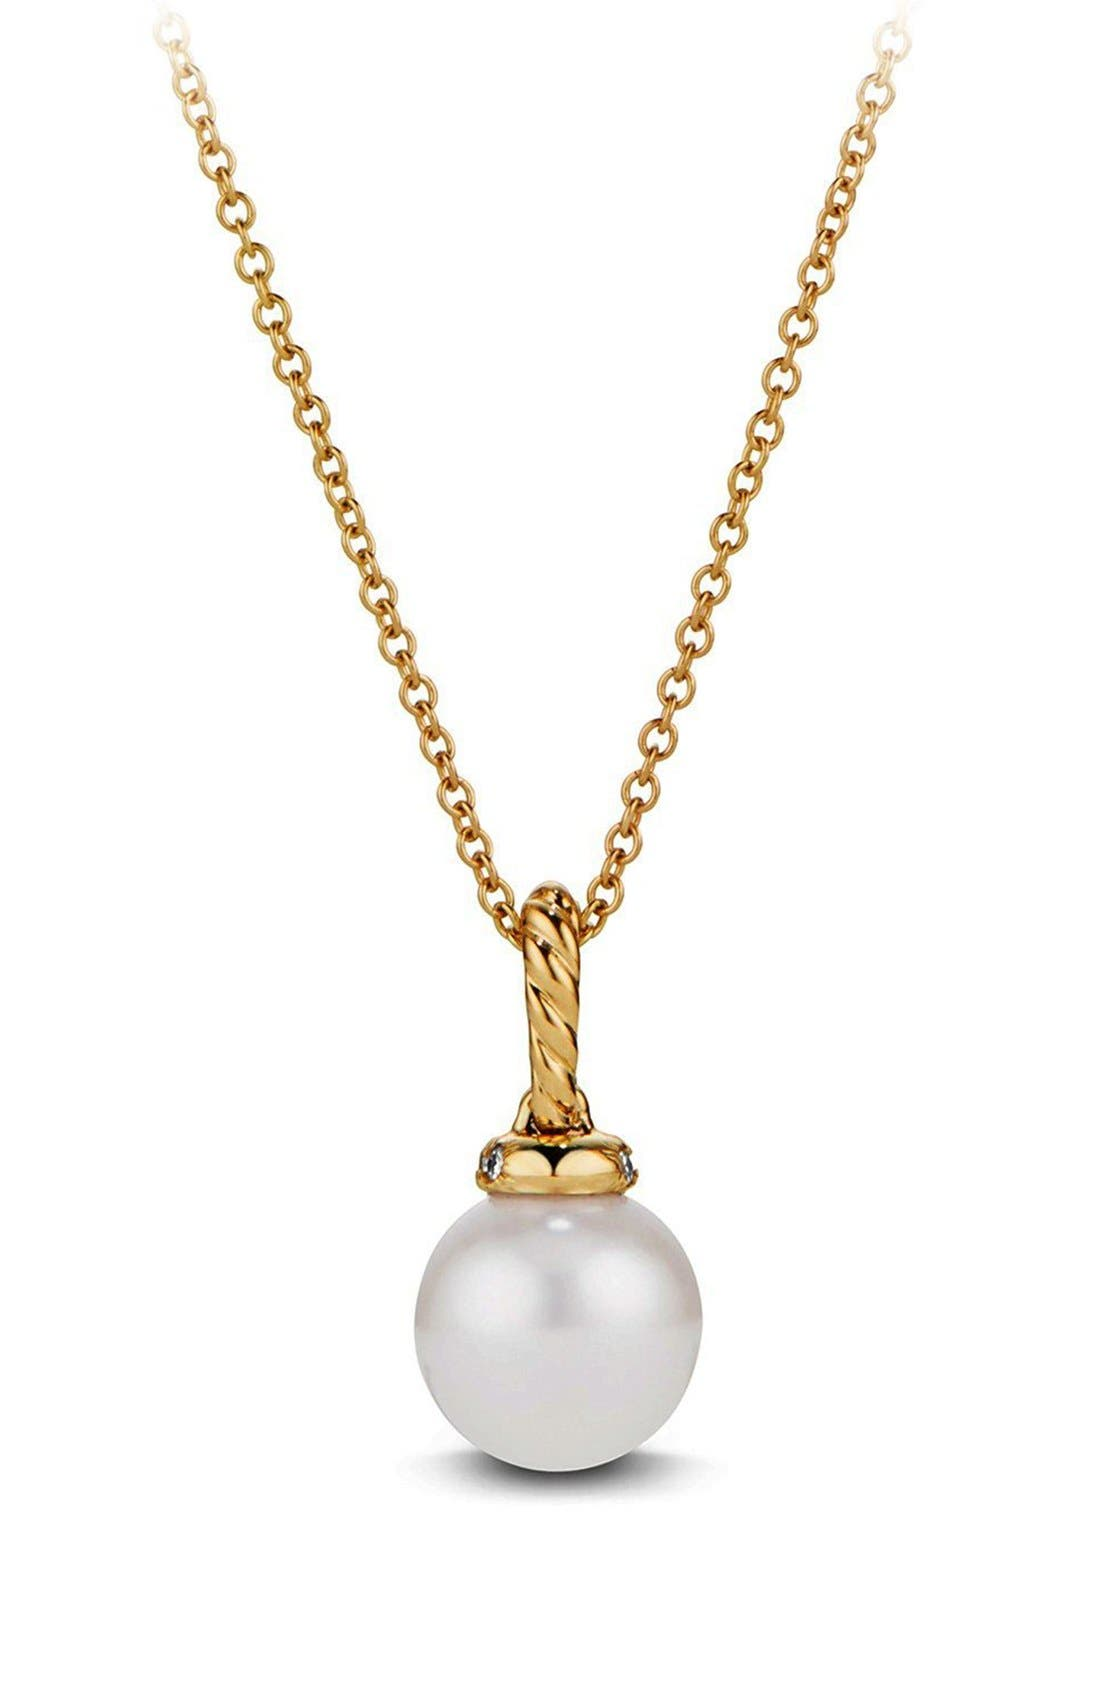 'Solari' Pendant Necklace with Pearls and Diamonds in 18K Gold,                             Alternate thumbnail 4, color,                             PEARL